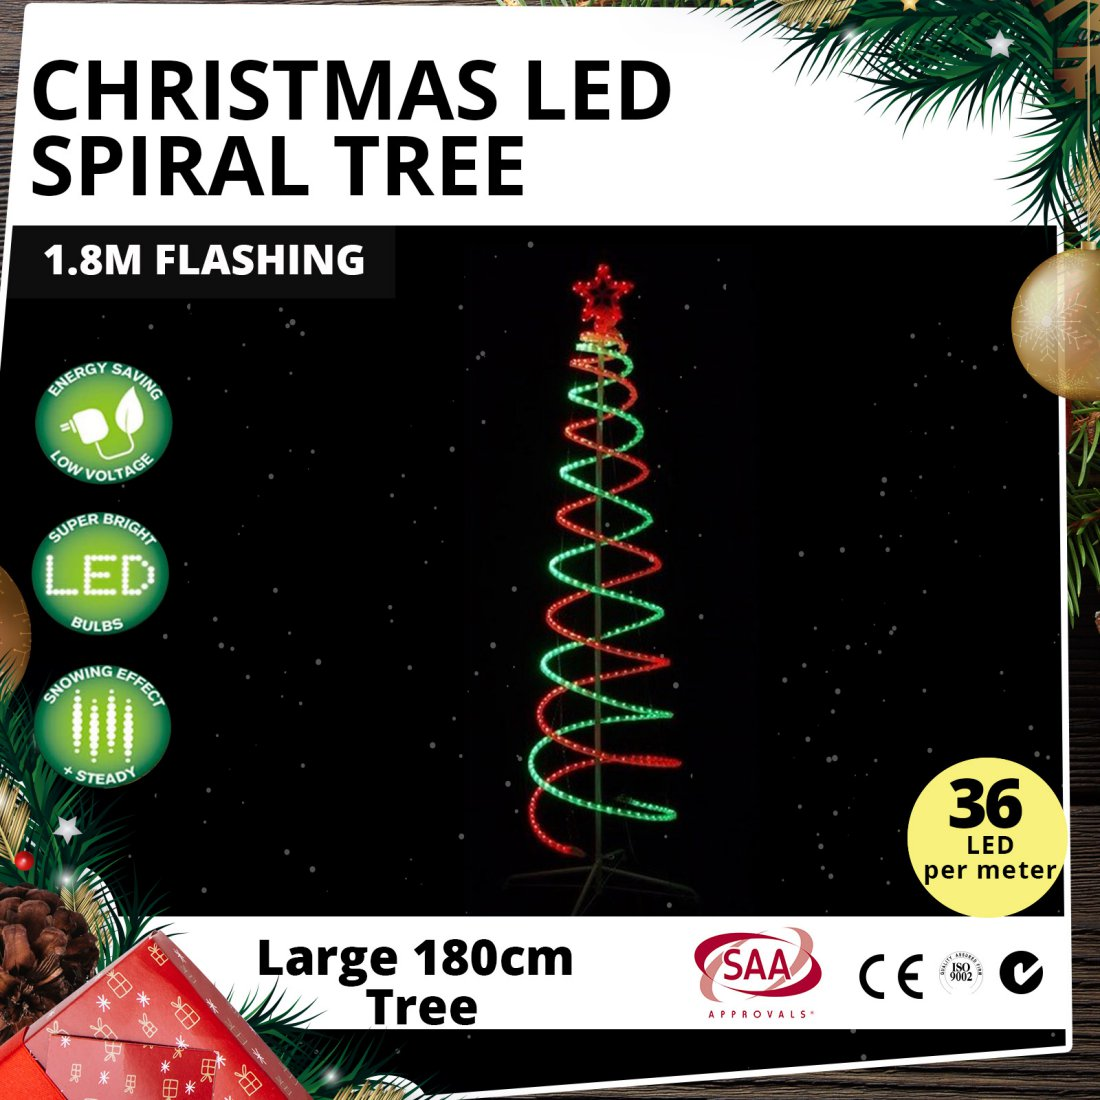 Christmas LED Spiral Tree 1.8m Flashing